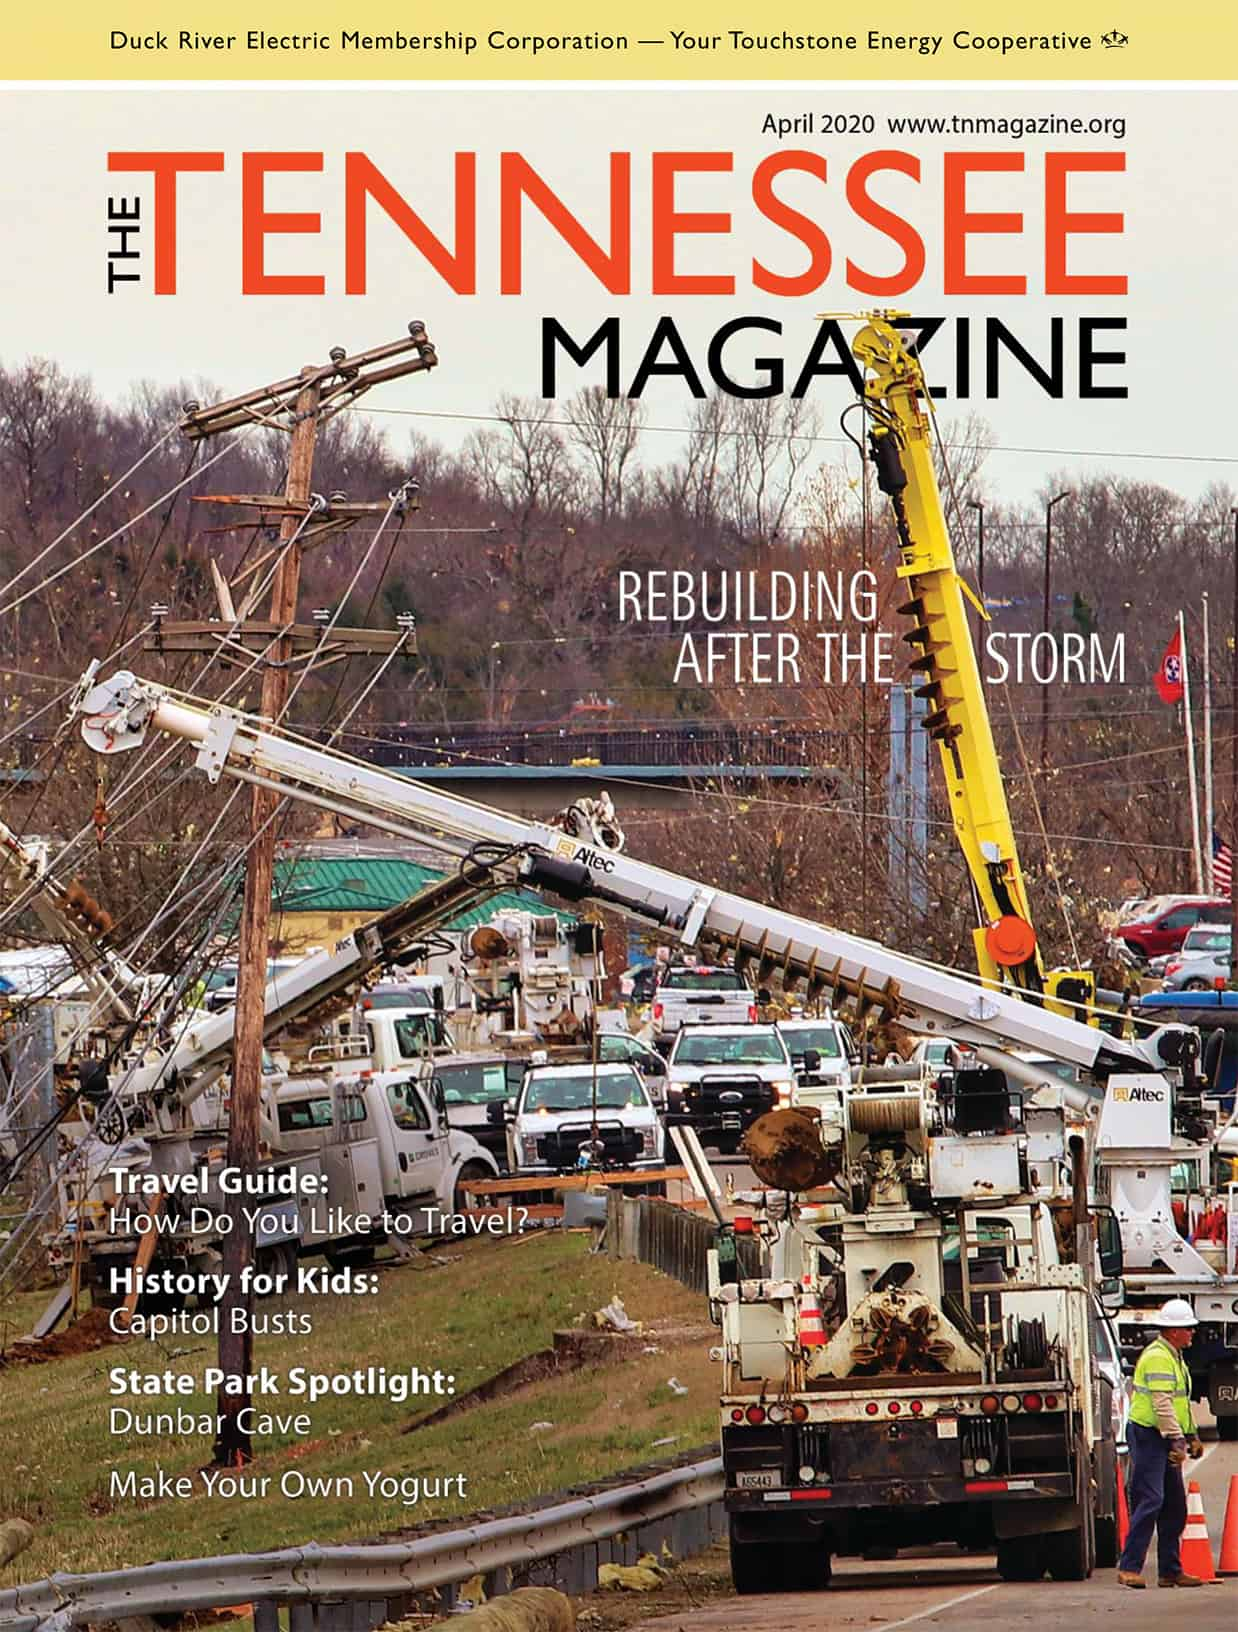 Tennessee Magazine April 2020 Cover